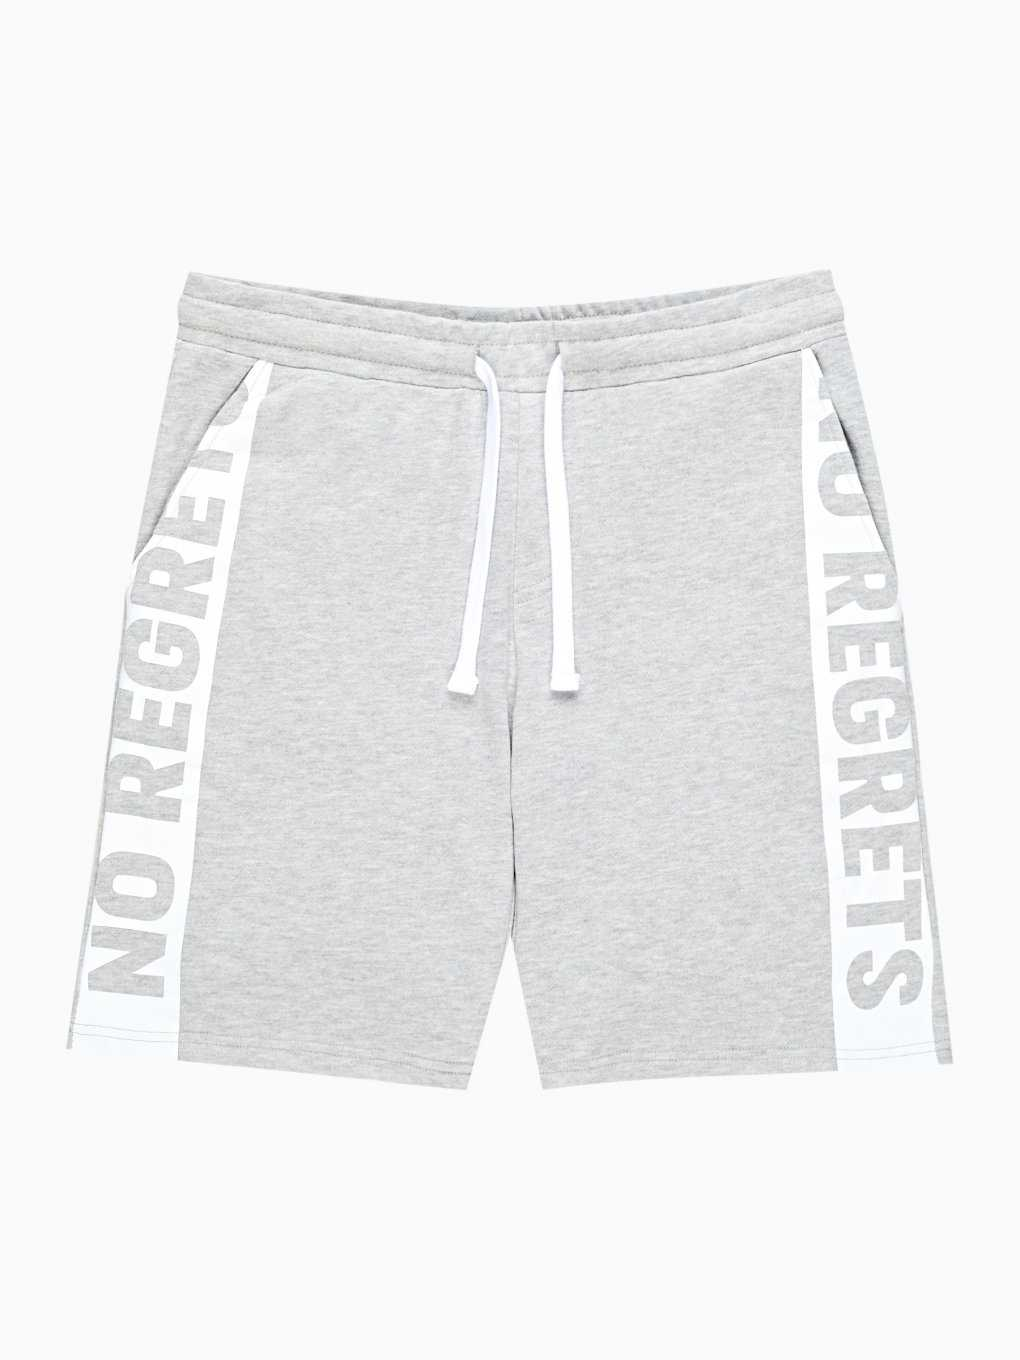 SWEATSHORTS WITH PRINT